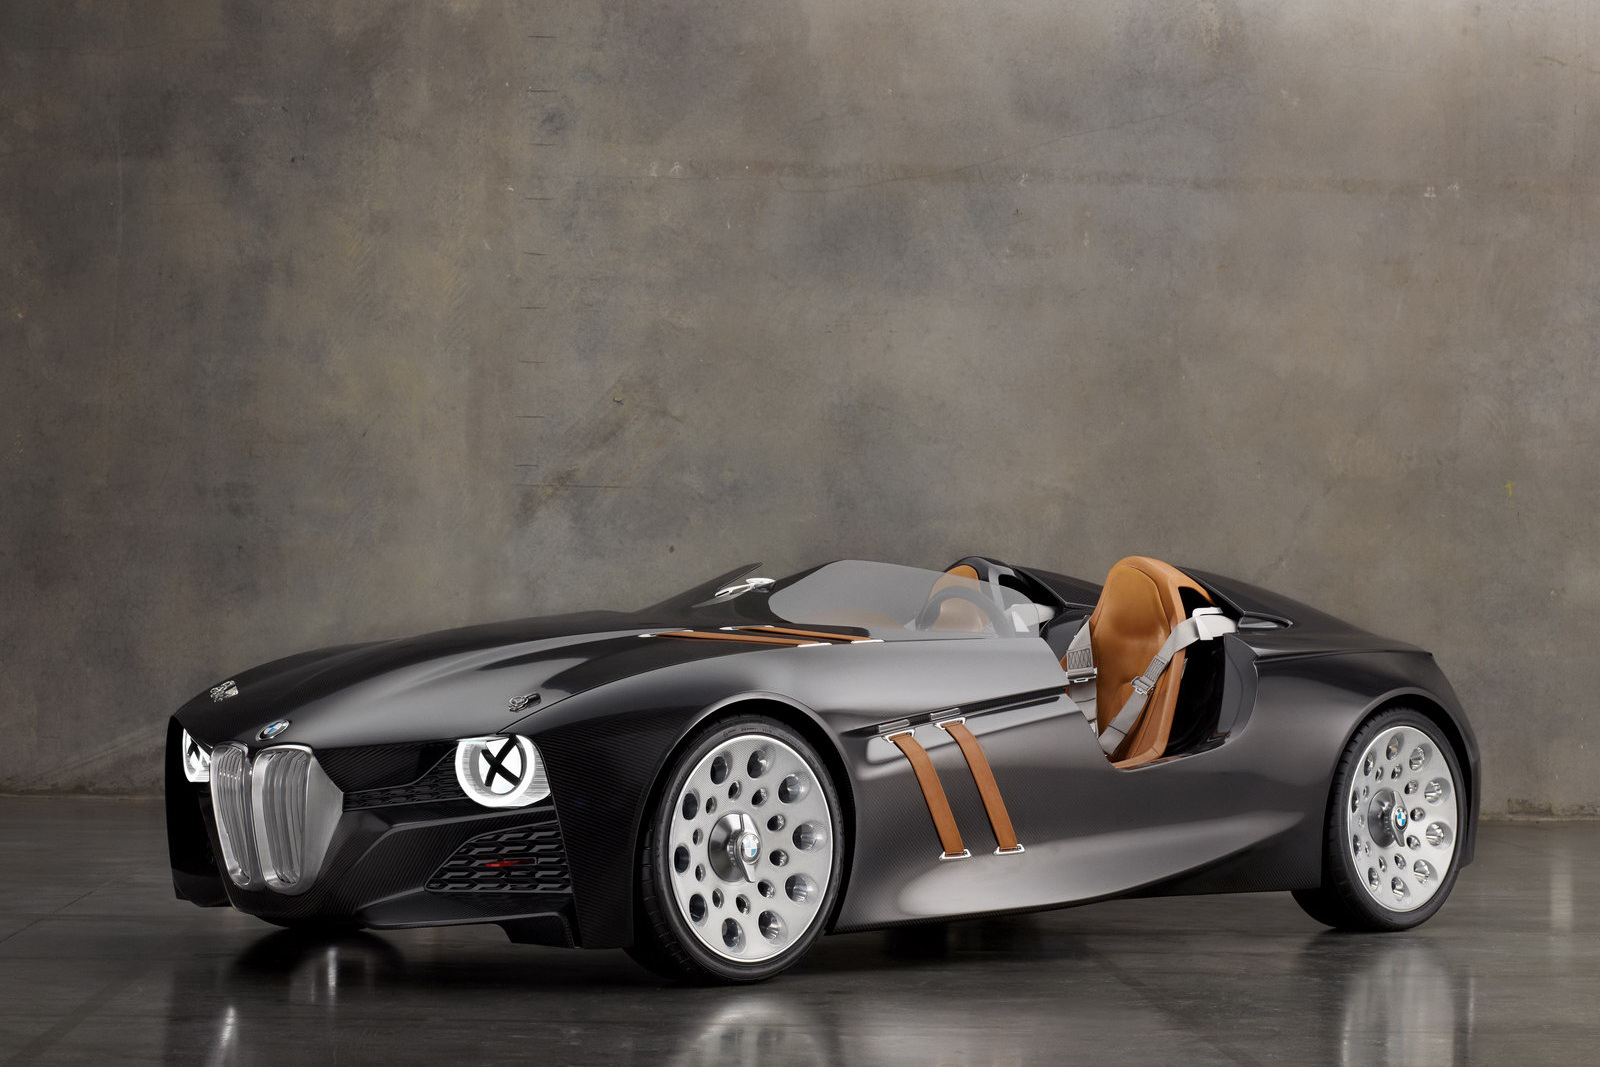 BMW 328 Hommage Concept 8 BMW's Retrolicious 328 Homage Concept Car to Launch Soon